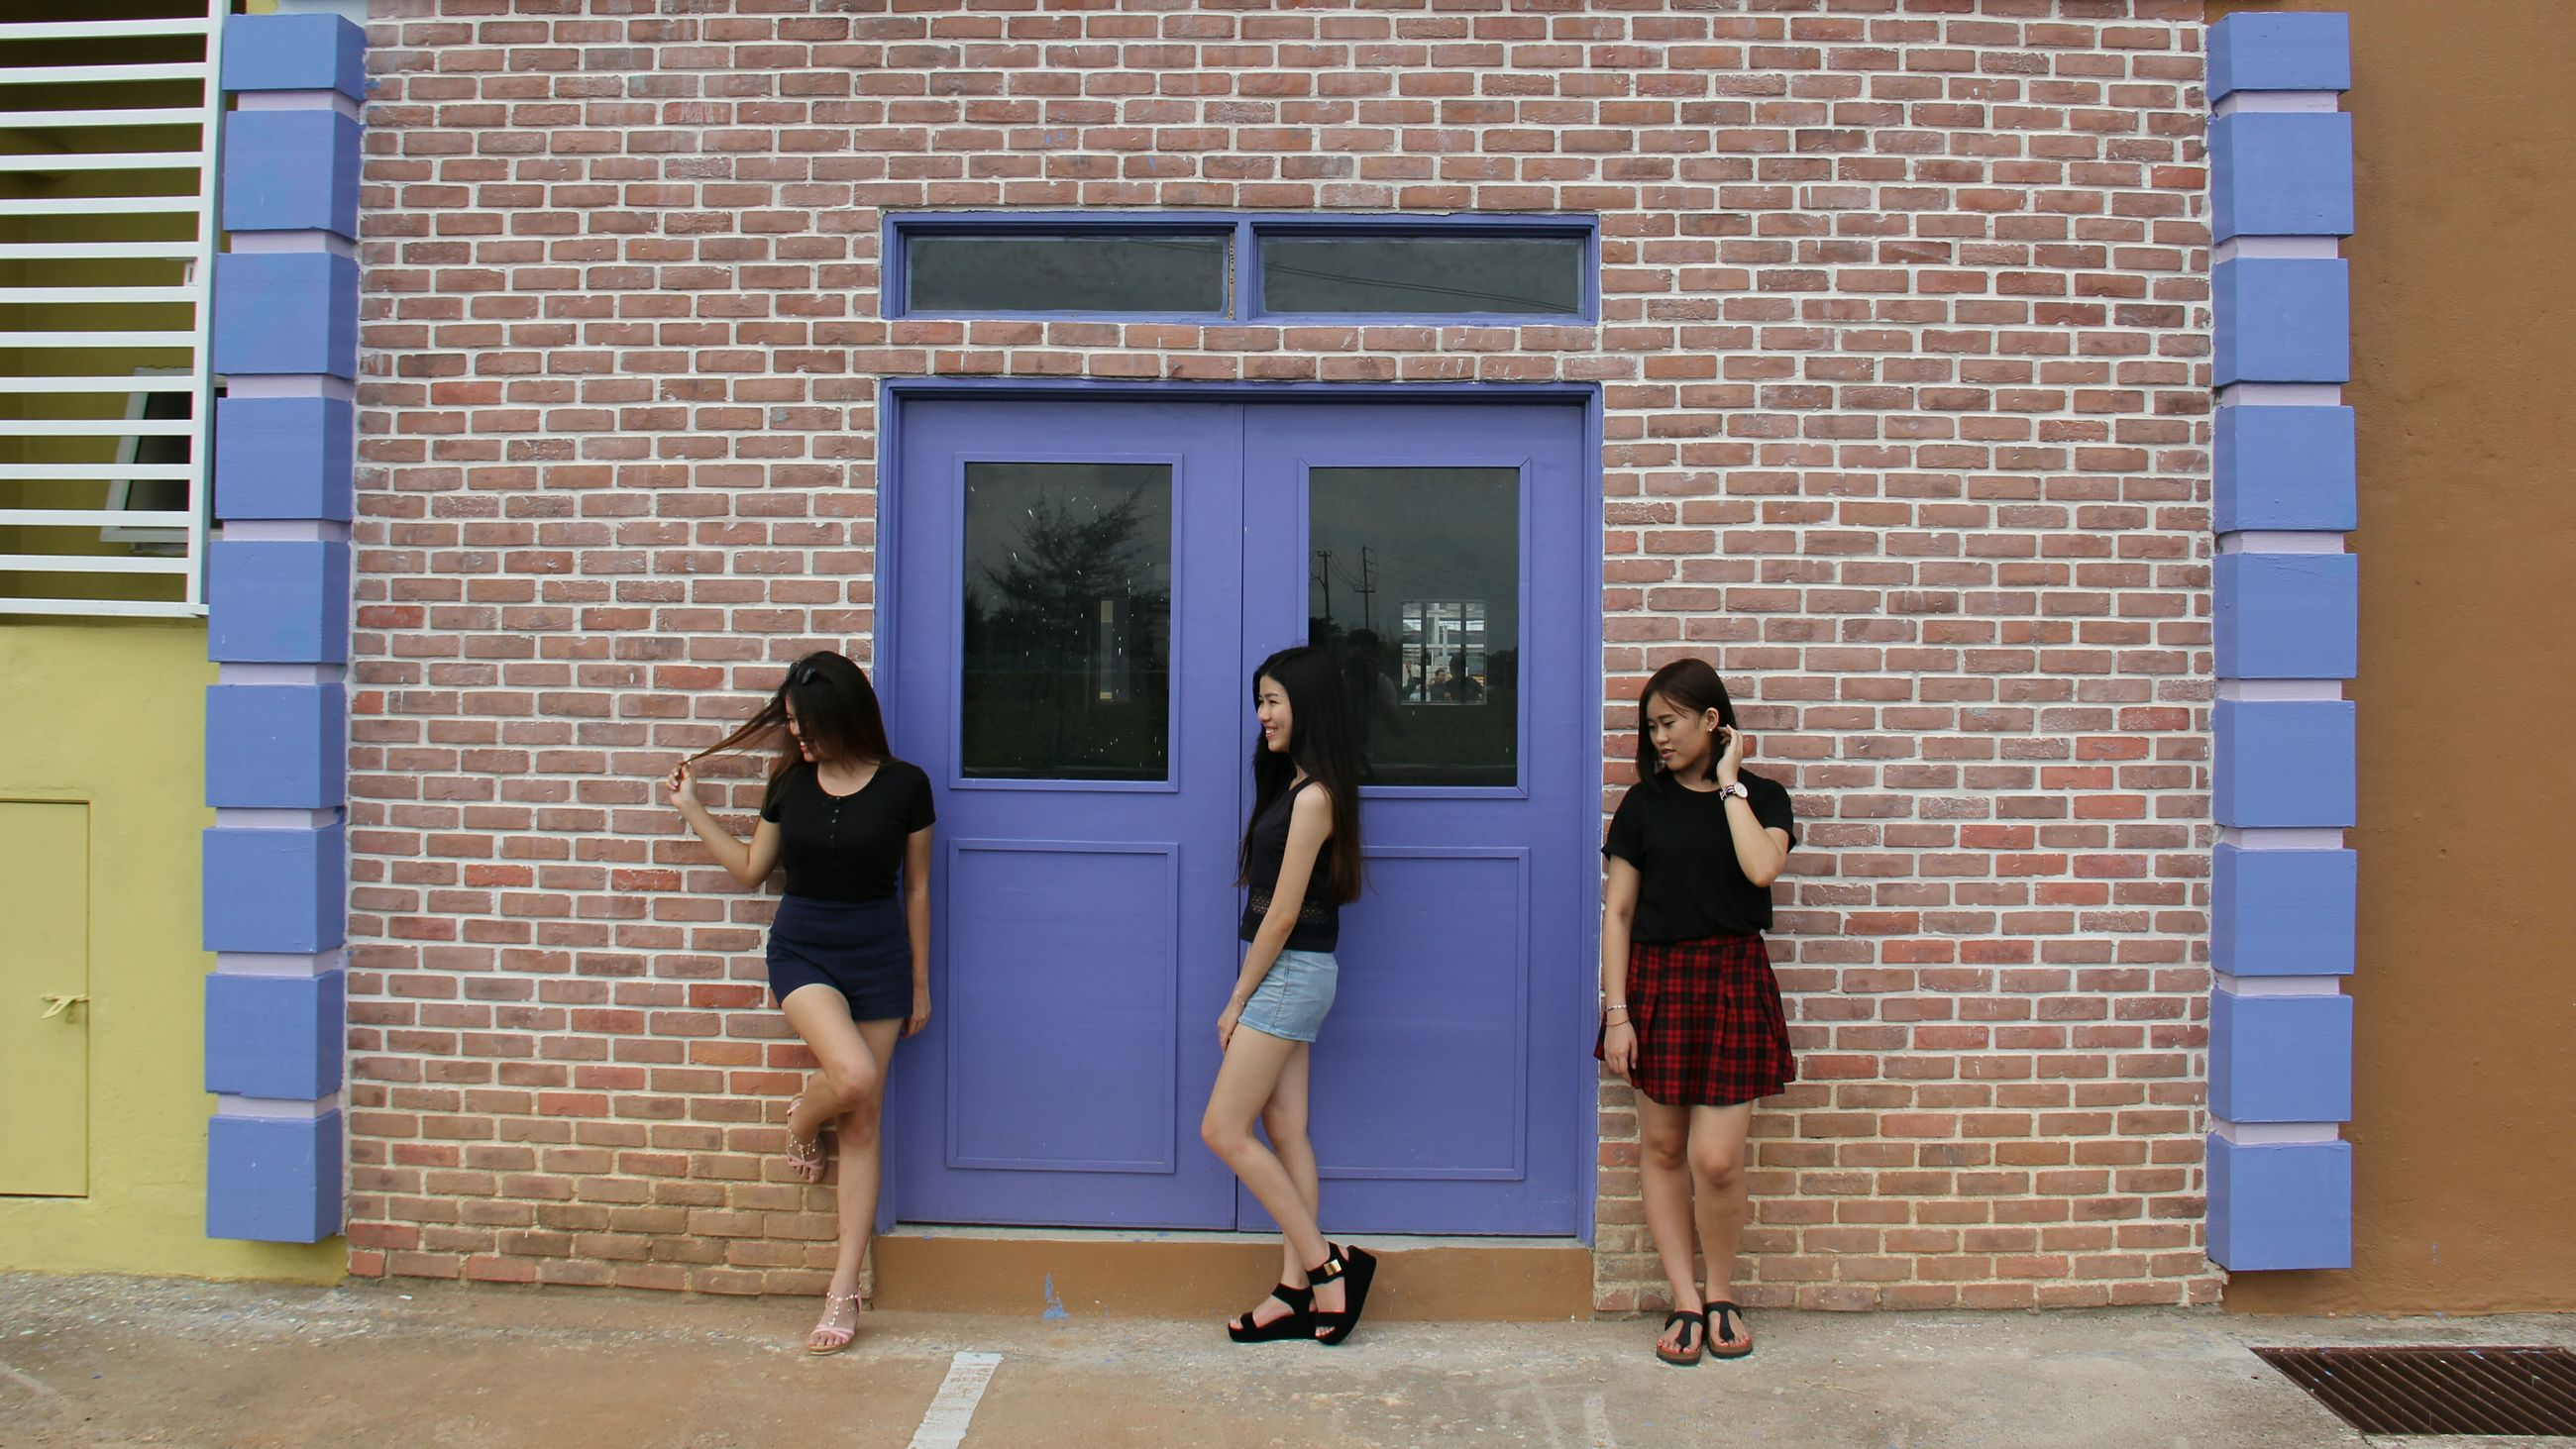 building exterior, built structure, architecture, window, outdoors, lifestyles, reflection, brick wall, front door, real people, friendship, full length, two people, people, residential building, day, adult, young women, adults only, young adult